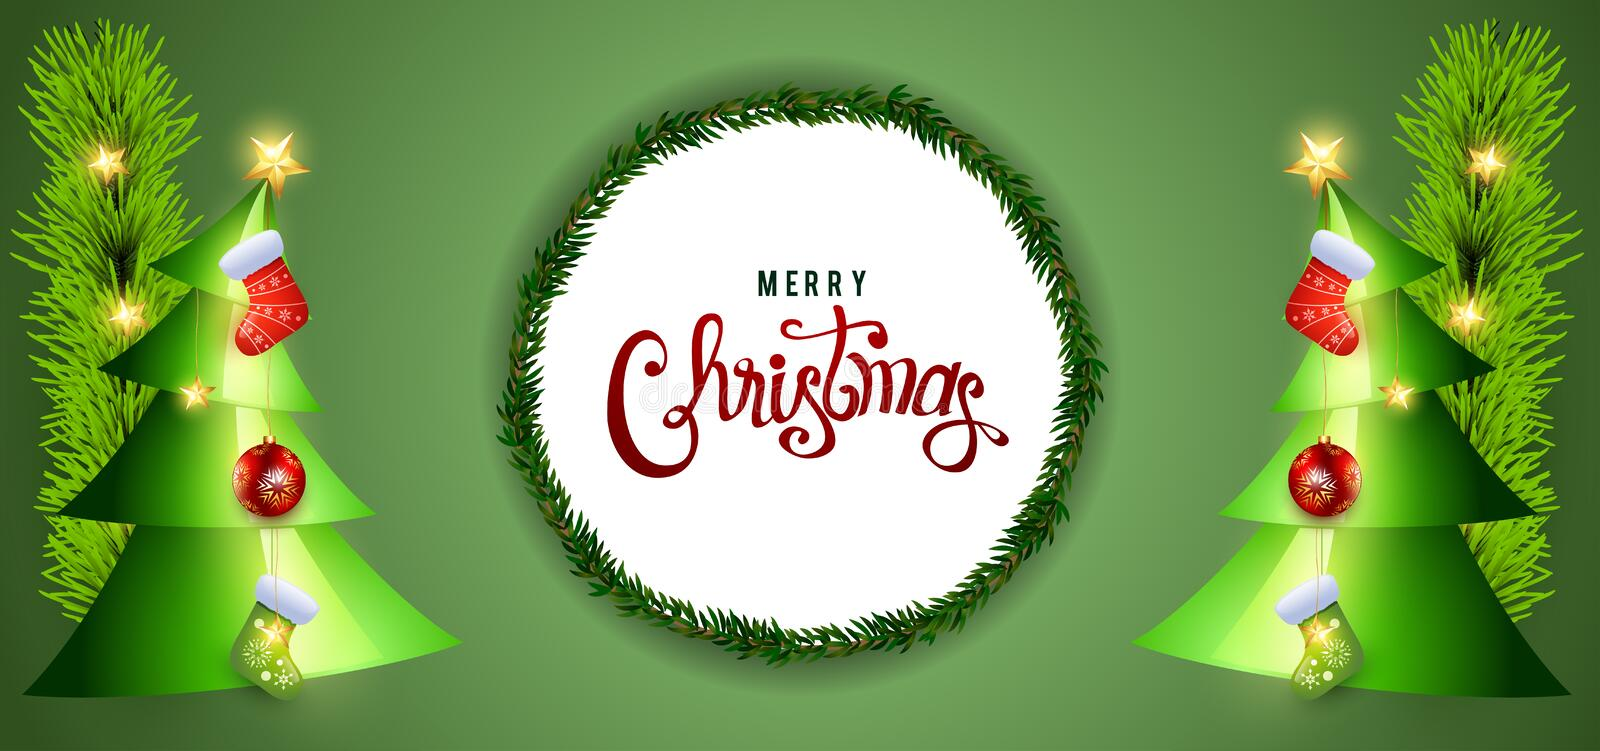 Christmas green background design. Christmas and happy new year green background design, holiday, xmas, abstract, wallpaper, illustration, snow, celebration royalty free stock photography